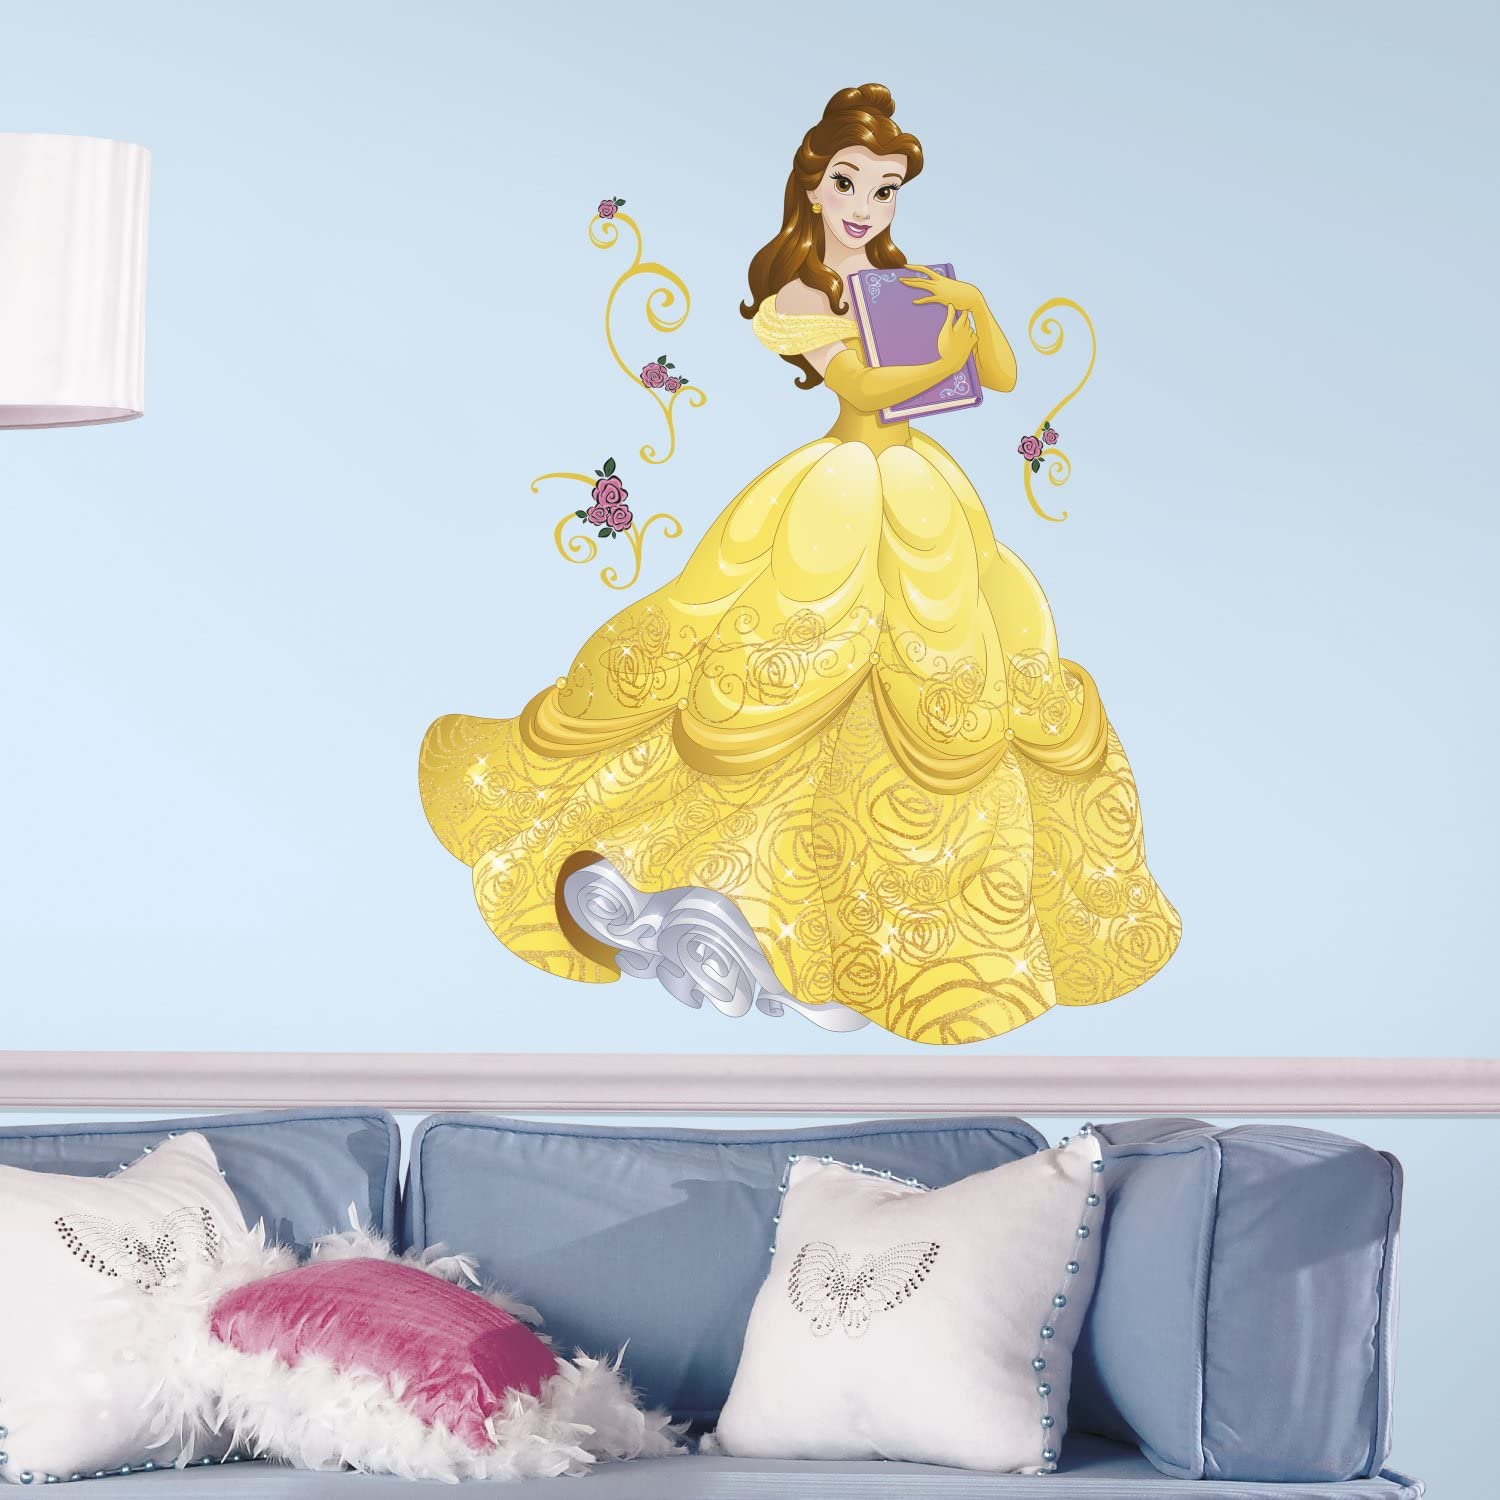 RoomMates Disney Princess  Sparkling Cinderella Peel And Stick Giant Wall Decals